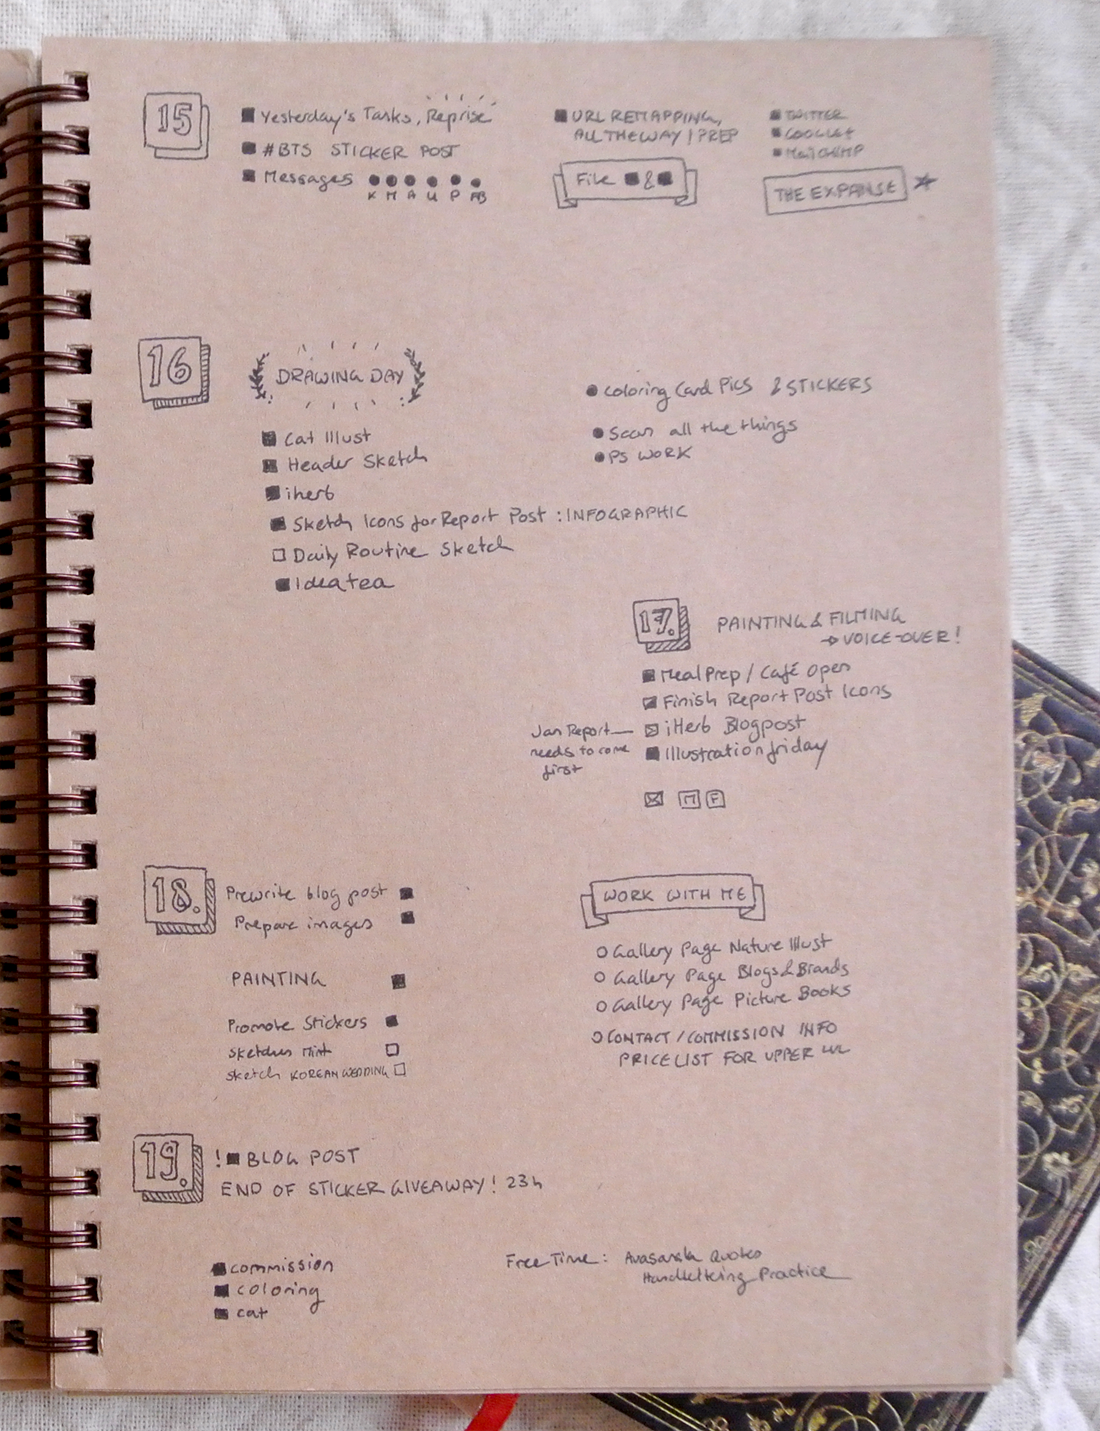 Bullet journal daily tasks and to-do lists. I fell behind on sketching and filming because there was just so much else to work on!